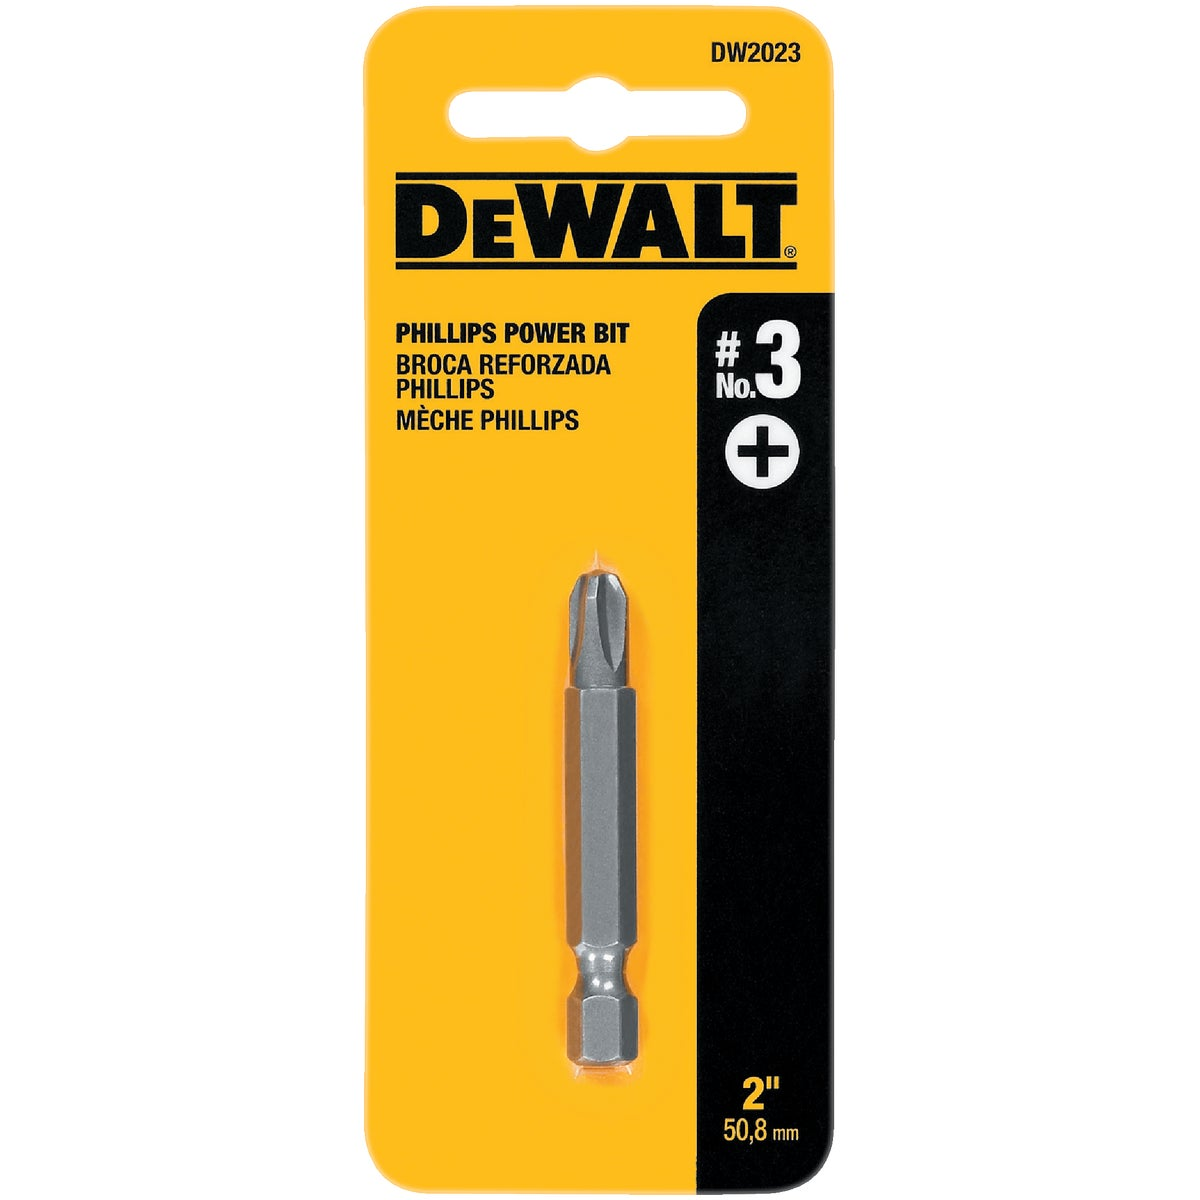 "#3 2"" PHIL POWER BIT - DW2023 by DeWalt"